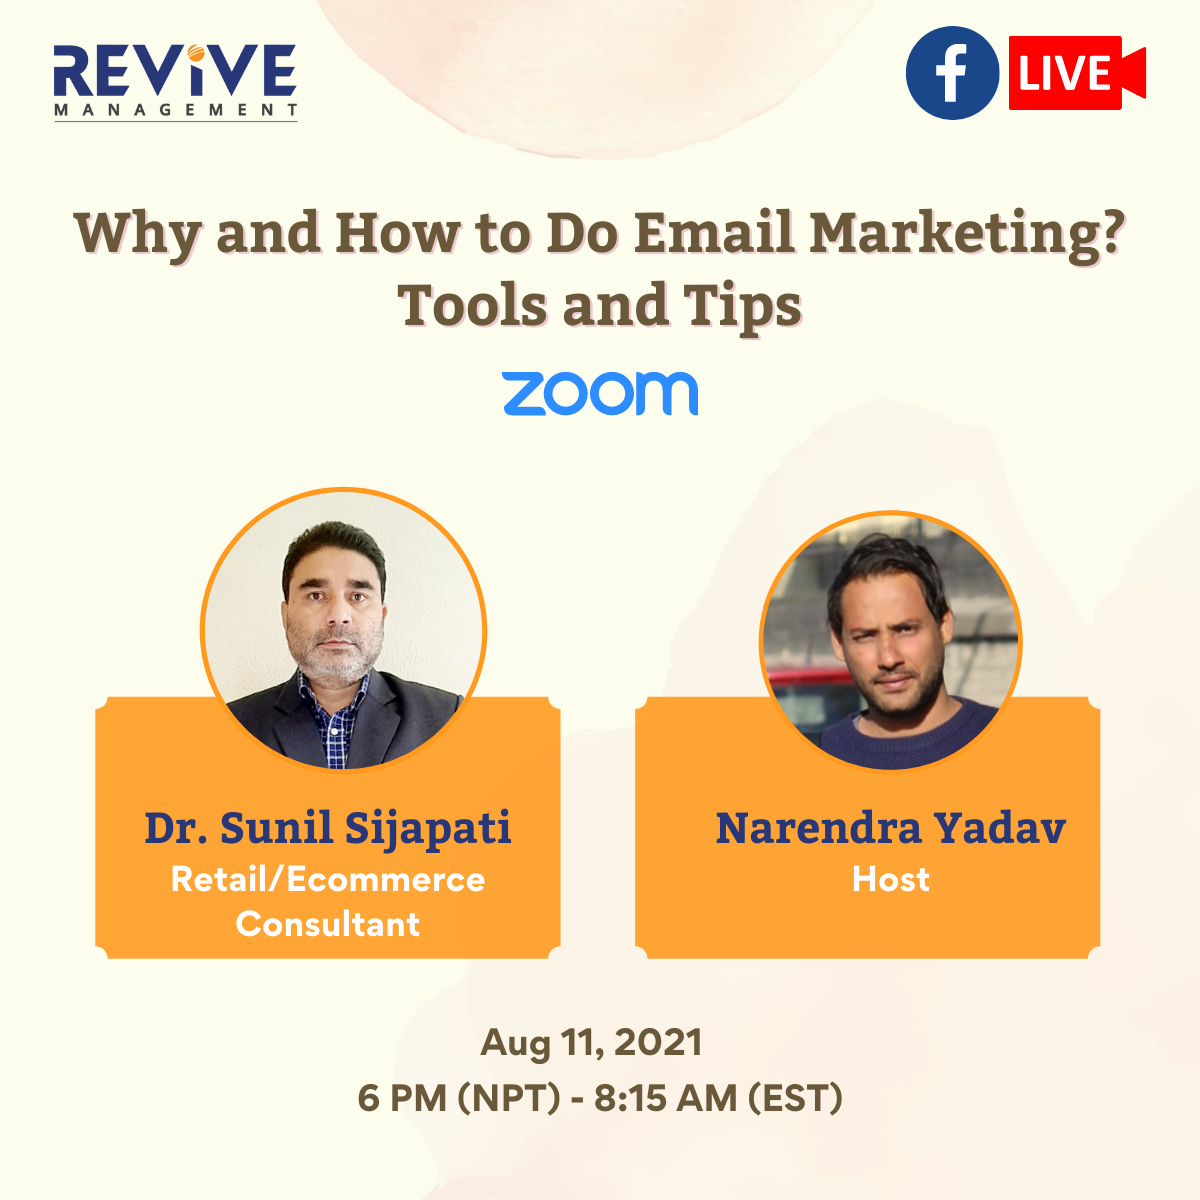 Why and How to do E-mail Marketing?